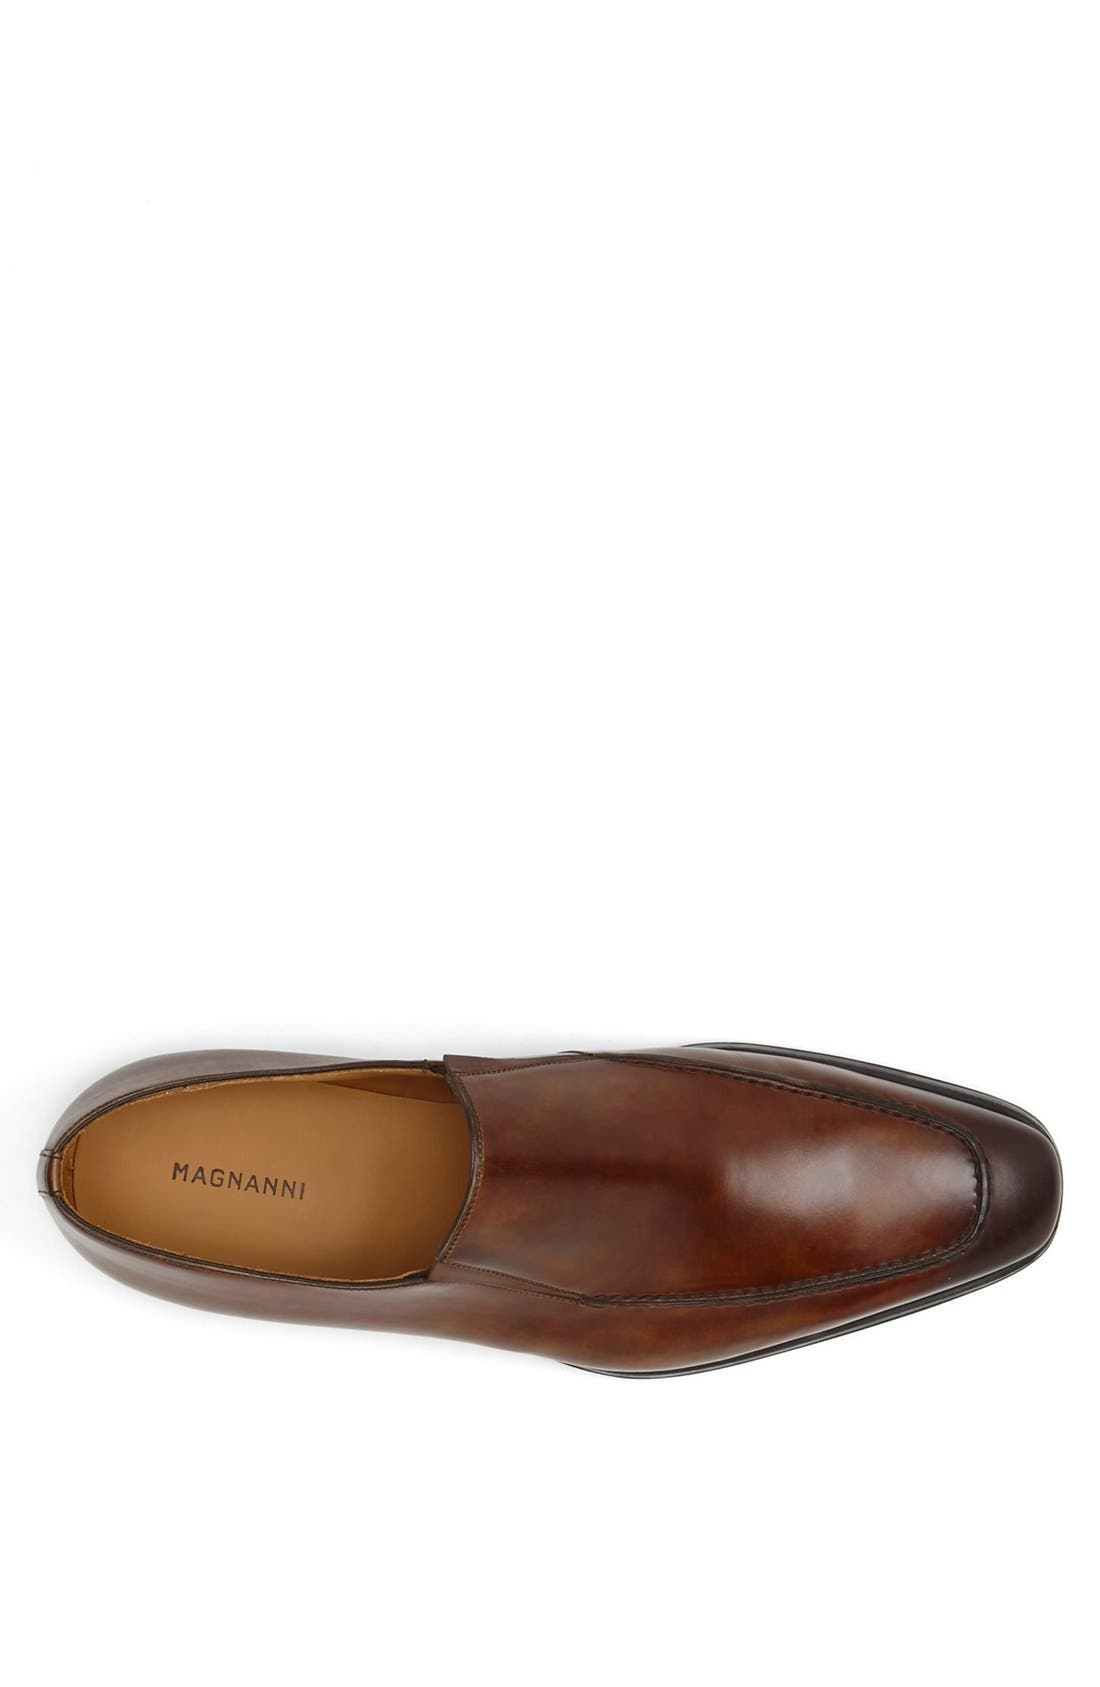 Alternate Image 3  - Magnanni 'Leo' Venetian Loafer